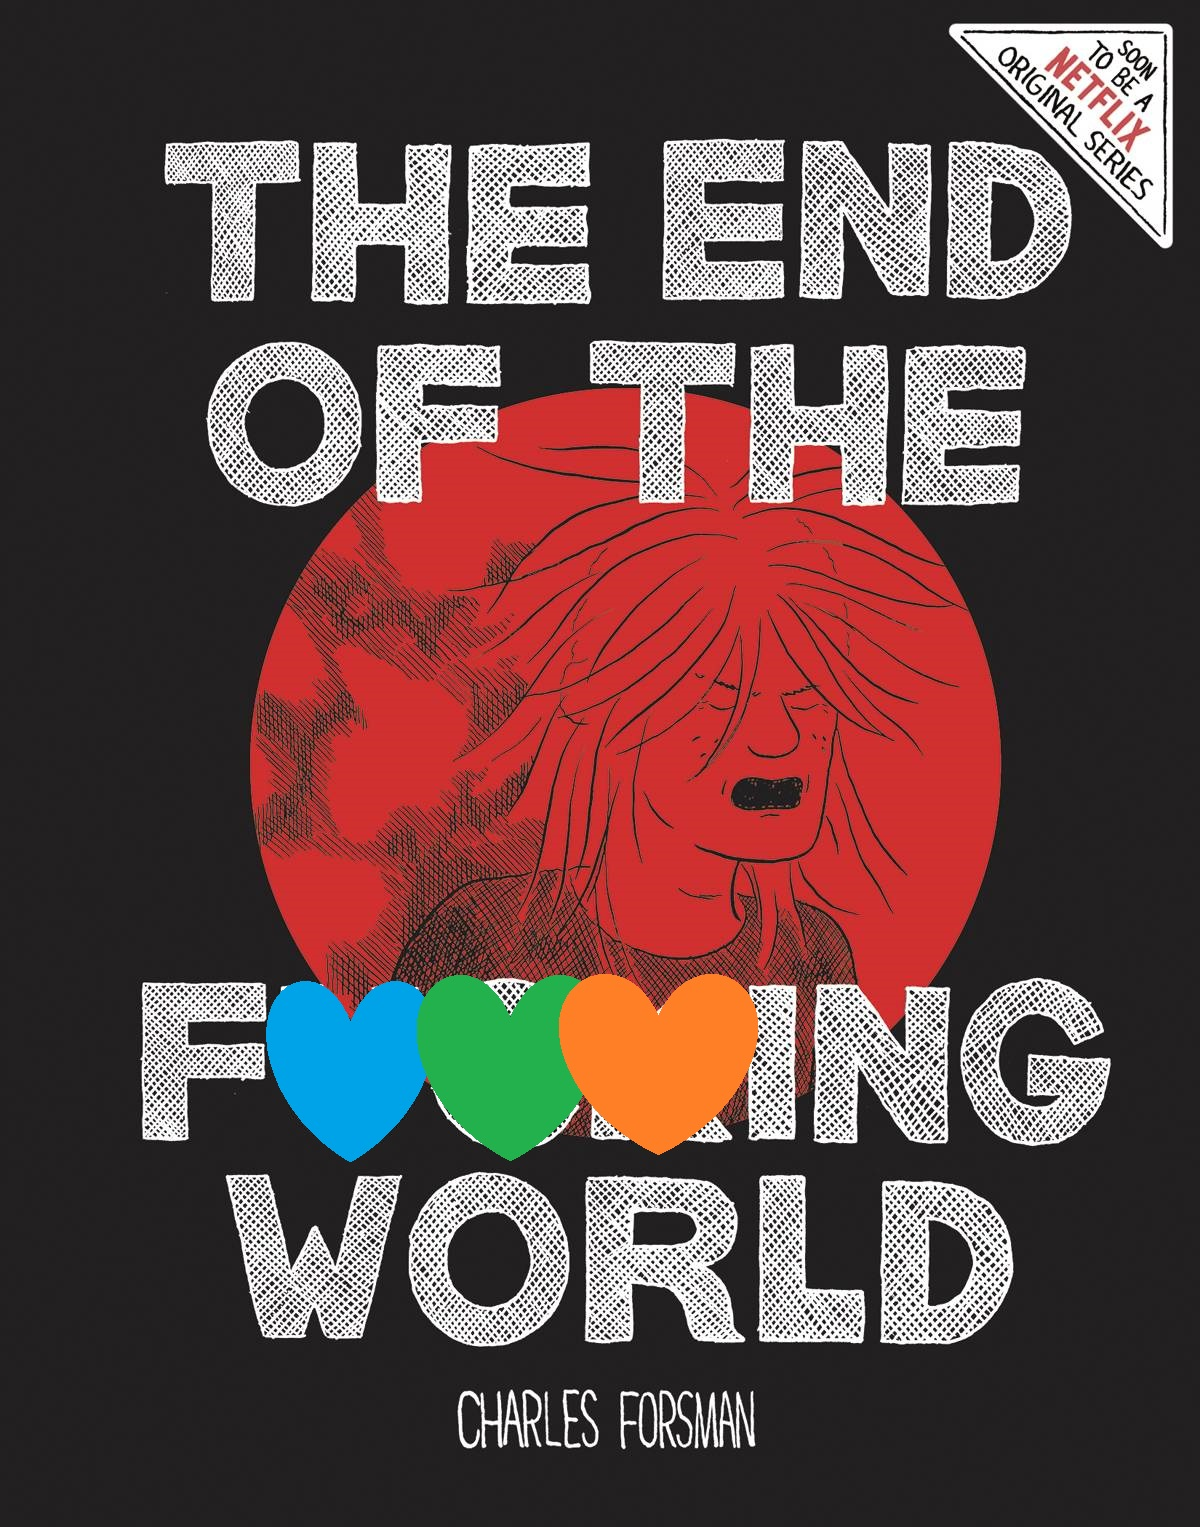 The End of the F***ing World GN - Mike's PickIf you've ever talked to me in the store, you know that I've come to love the work of Charles Forsman (Slasher, I Am Not Okay With This).  So, imagine my excitement when I heard that his graphic novel, The End of the F***ing World, was being turned into a Netflix miniseries!  Though the show is streaming now, I highly recommend reading the source material first.  Rendered in Forsman's minimalist style, the tale recounts the relationship of star-crossed lovers, one a jaded and wounded rebel, the other a possible budding sociopath.  Despite the cartoony look of the piece, Forsman weaves a palpable tone of alienation and bittersweet young love.  Also, there's murder.  And Satanism.  The heavy subject matter and the deceptively simple artwork combine for a flavor that is both compelling and unsettling.  Violent, though not excessively so, and featuring some dark humor, The End of the F***ing World is yet another example of why anything Forsman makes is a must-read.  Fantagraphics have recently gone back to press to meet the increased interest from the show, so grab the book today!